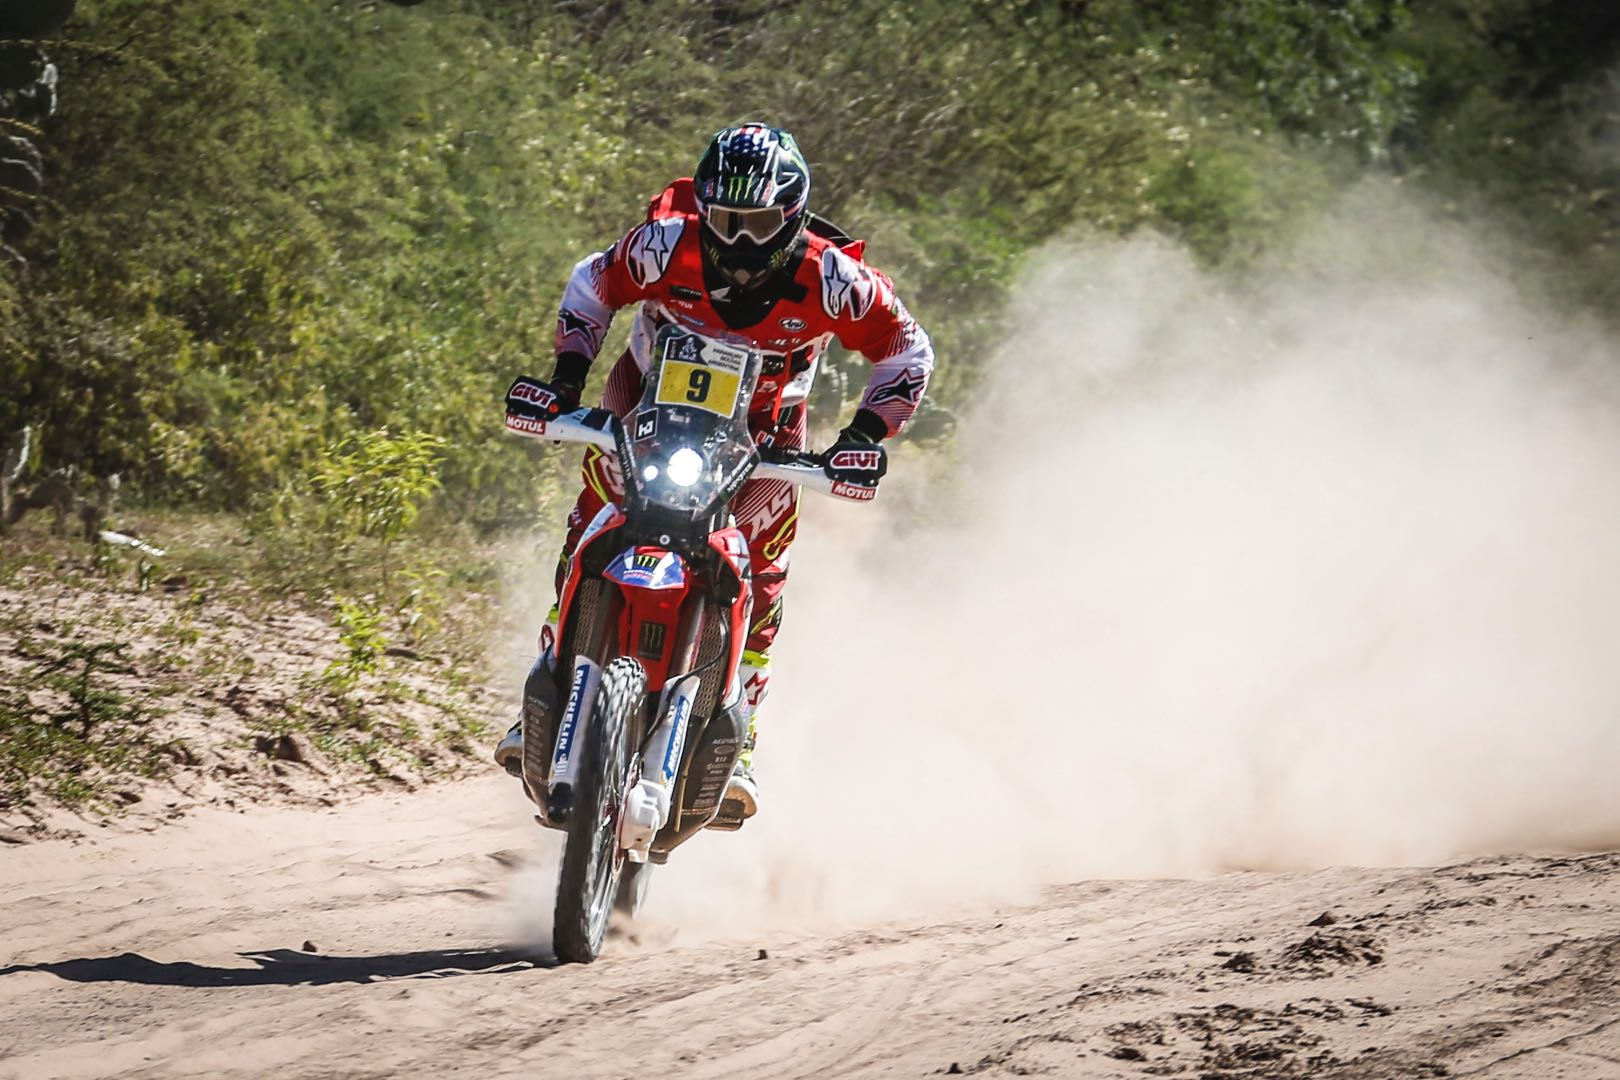 When the 2017 Dakar Rally overall results were in, America's Ricky Brabec was missing from the chats. He crashed during stage 11, and was forced to retire.